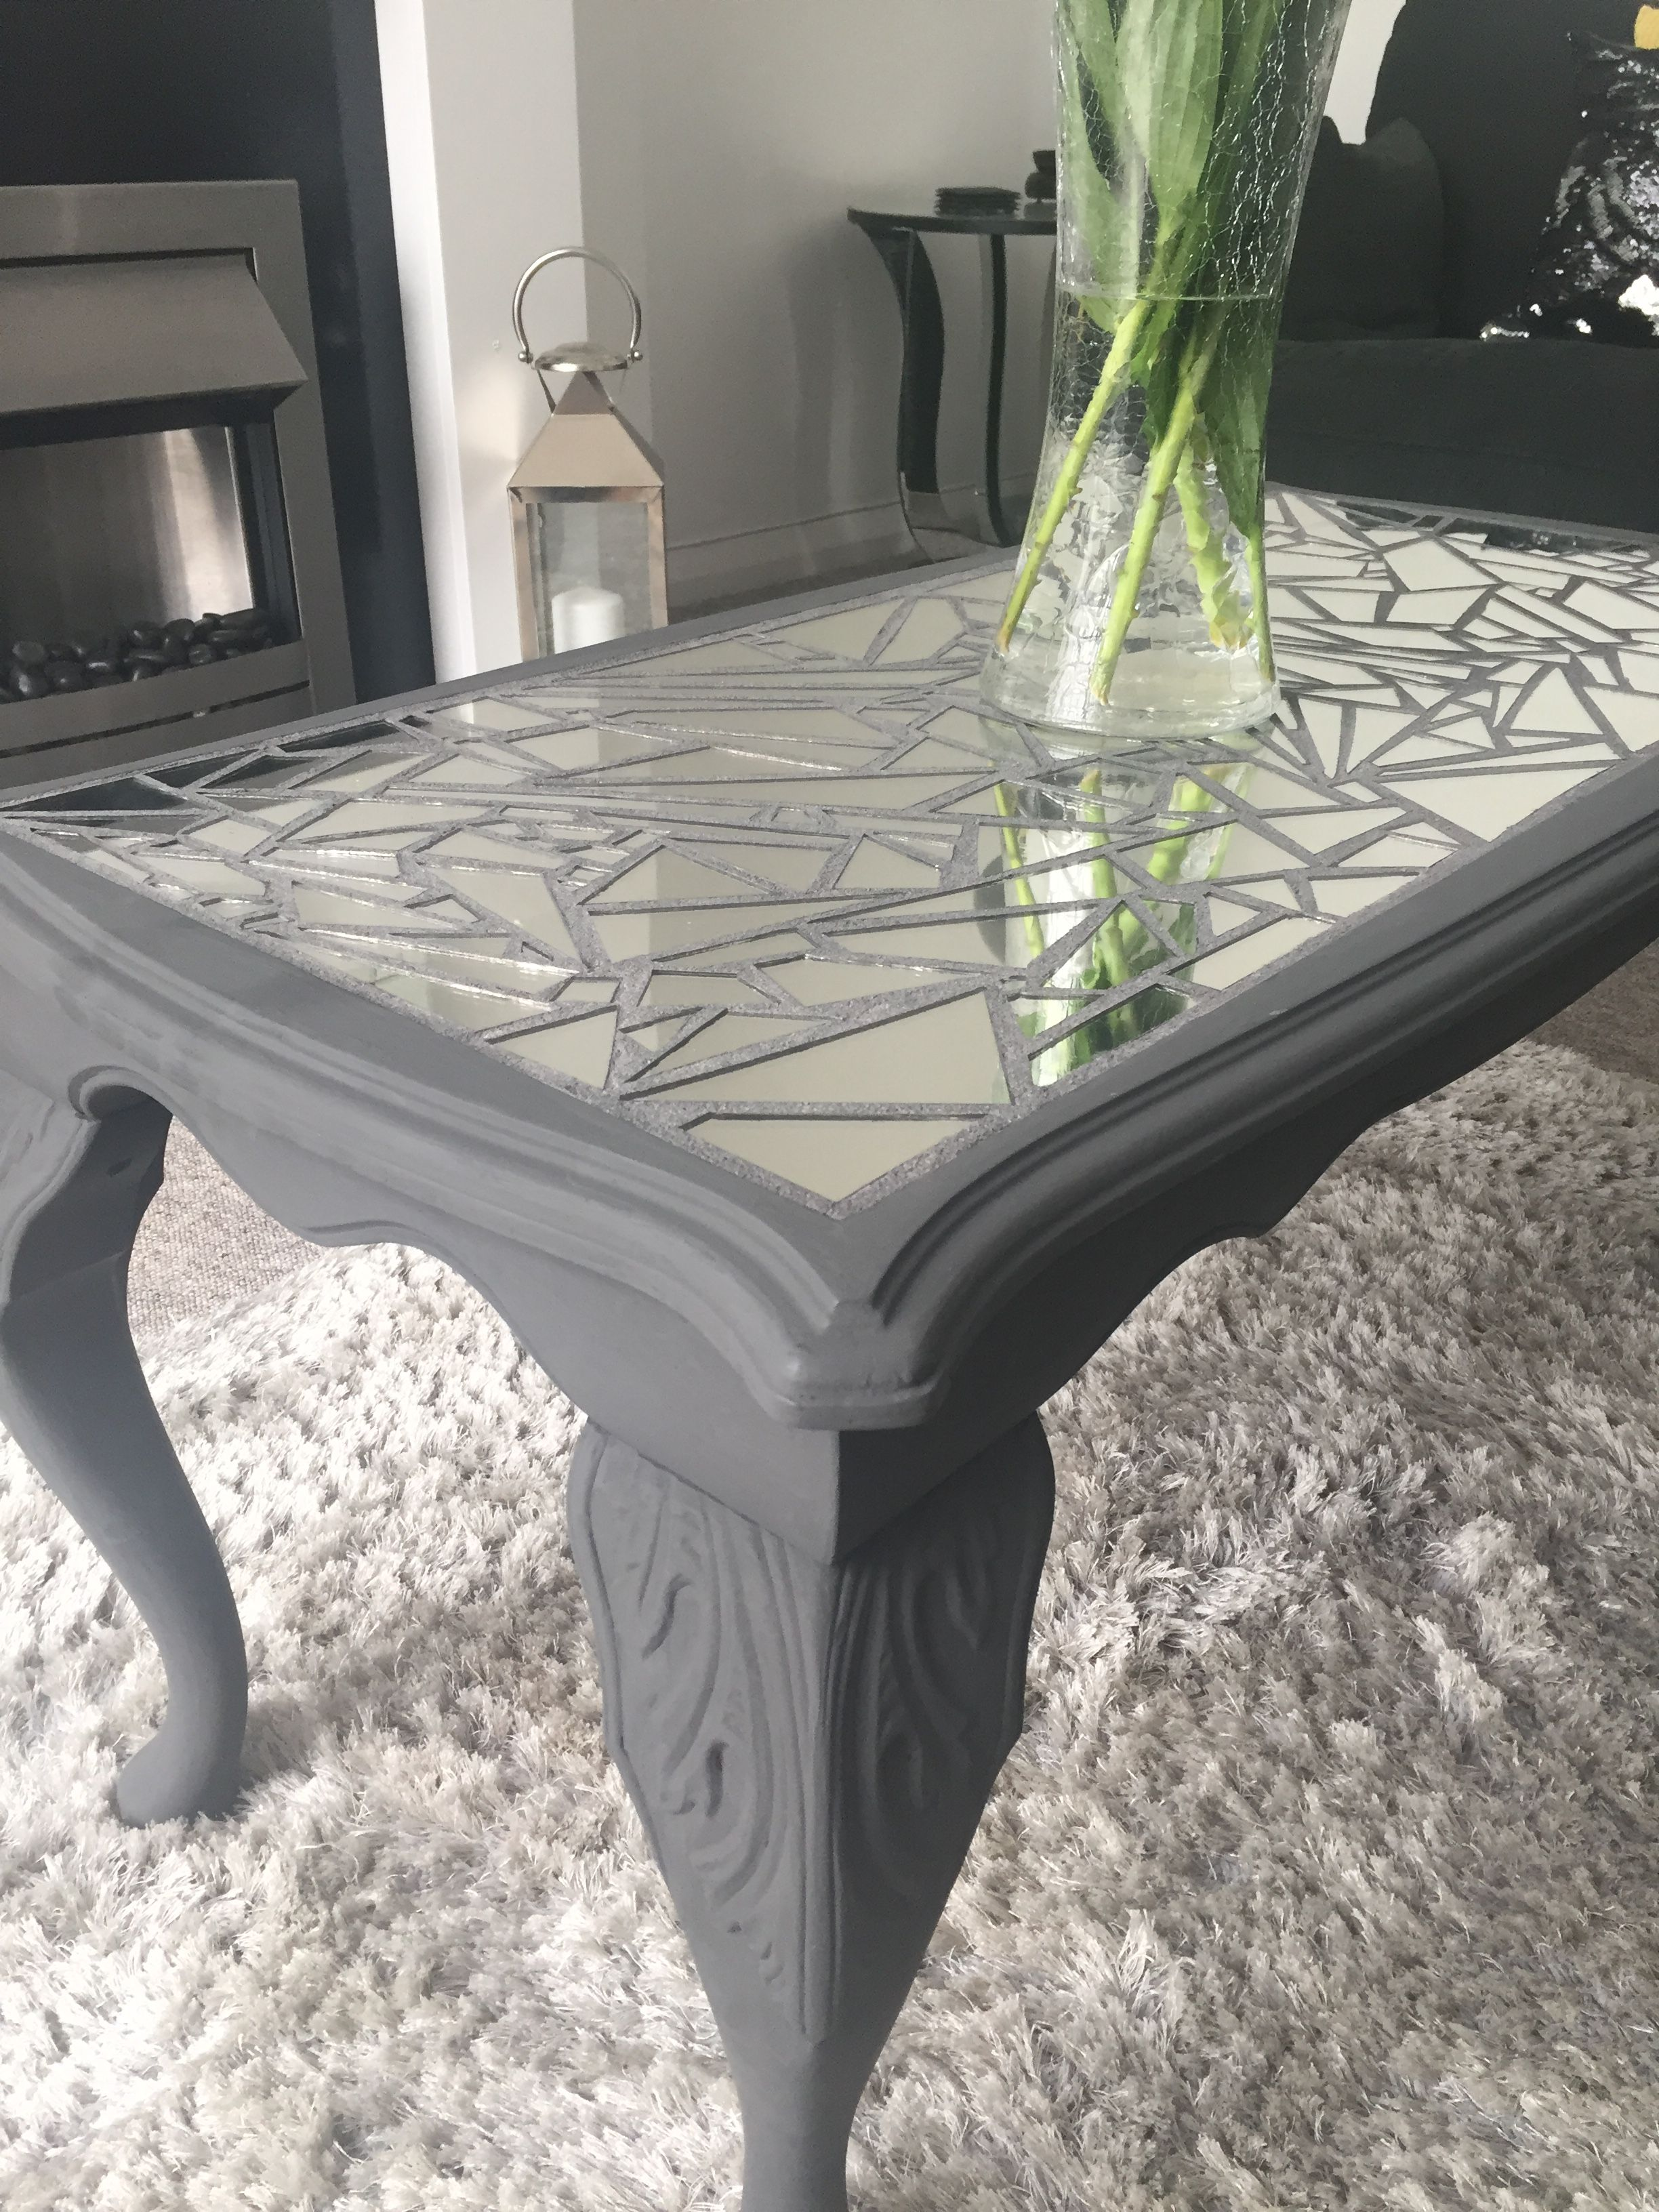 Cracked Mirror Coffee Table Upcycled Coffee Table Mirrored Coffee Tables Table [ 3264 x 2448 Pixel ]